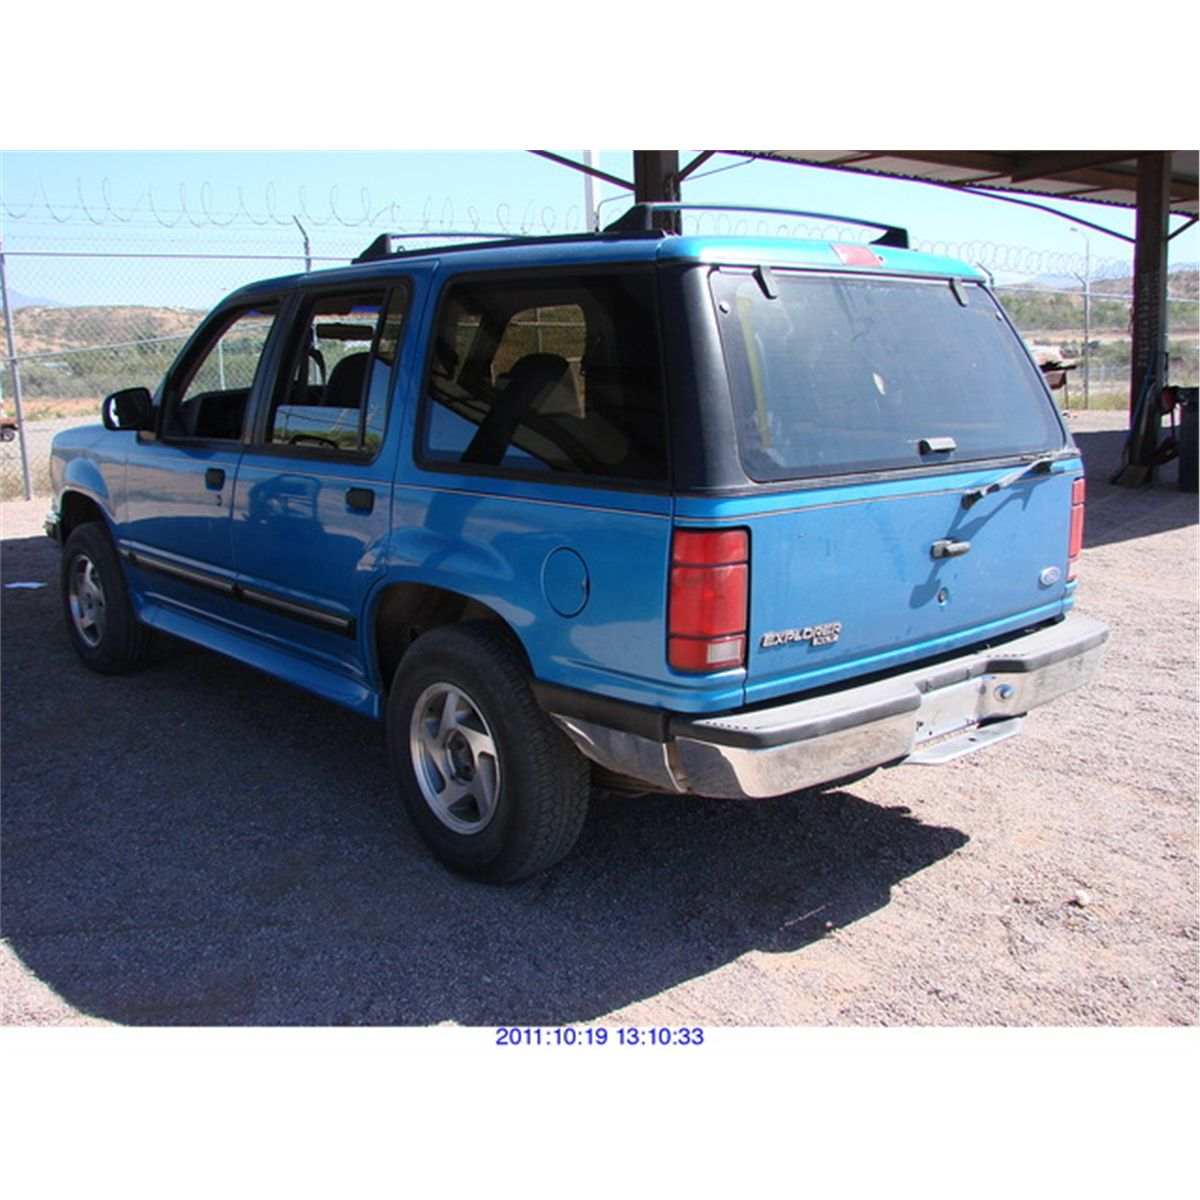 small resolution of  image 3 1994 ford explorer